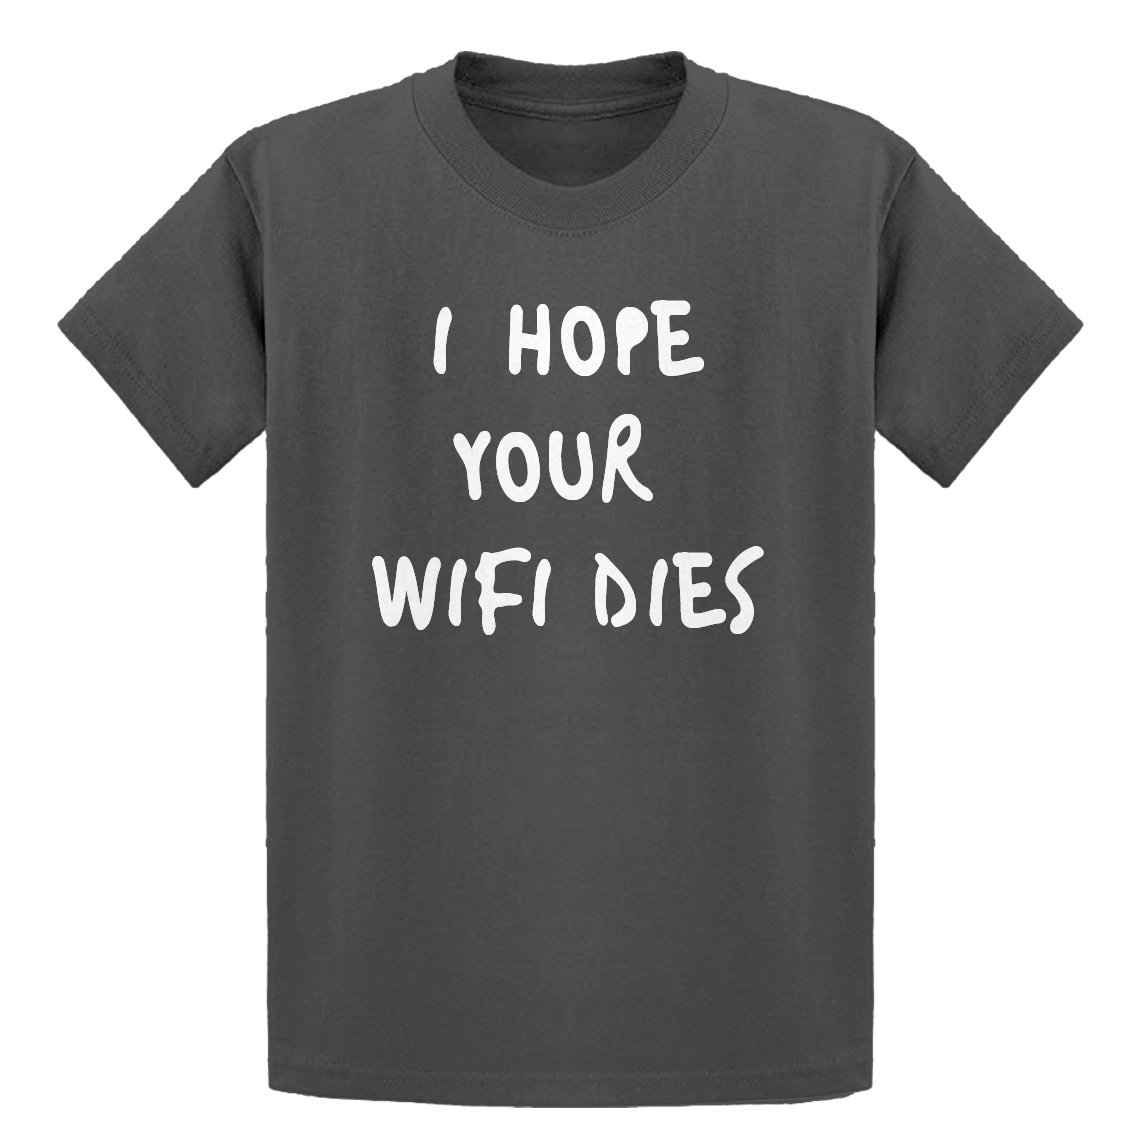 Indica Plateau Youth I Hope Your WiFi Dies Kids T-Shirt